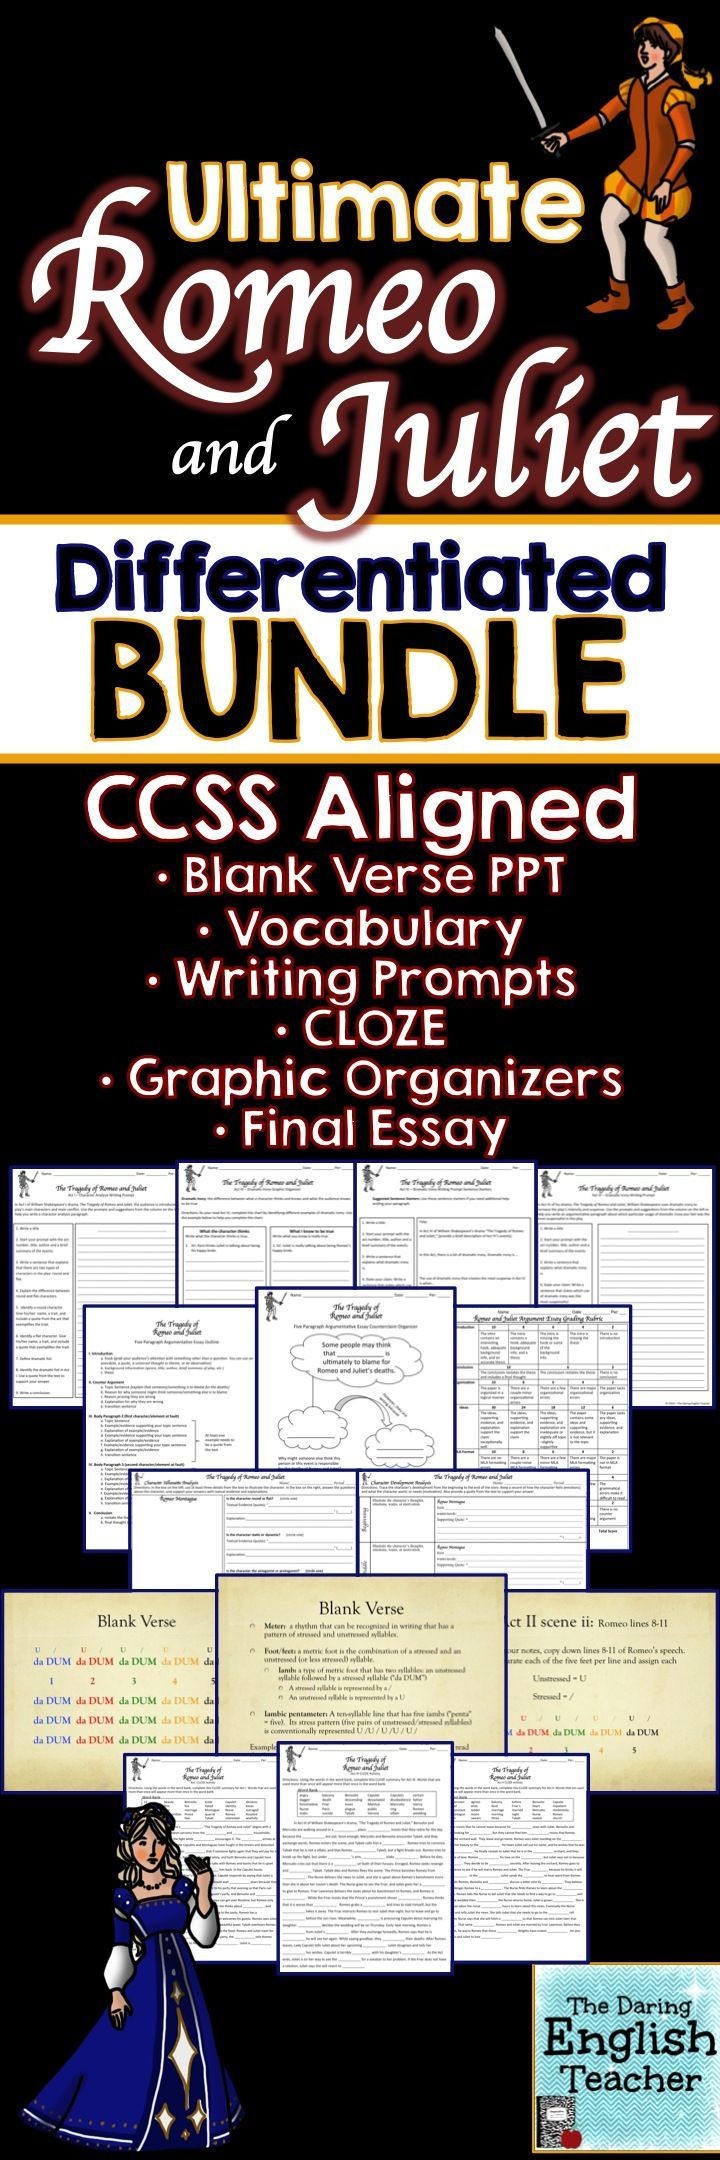 essay assignments for high school students